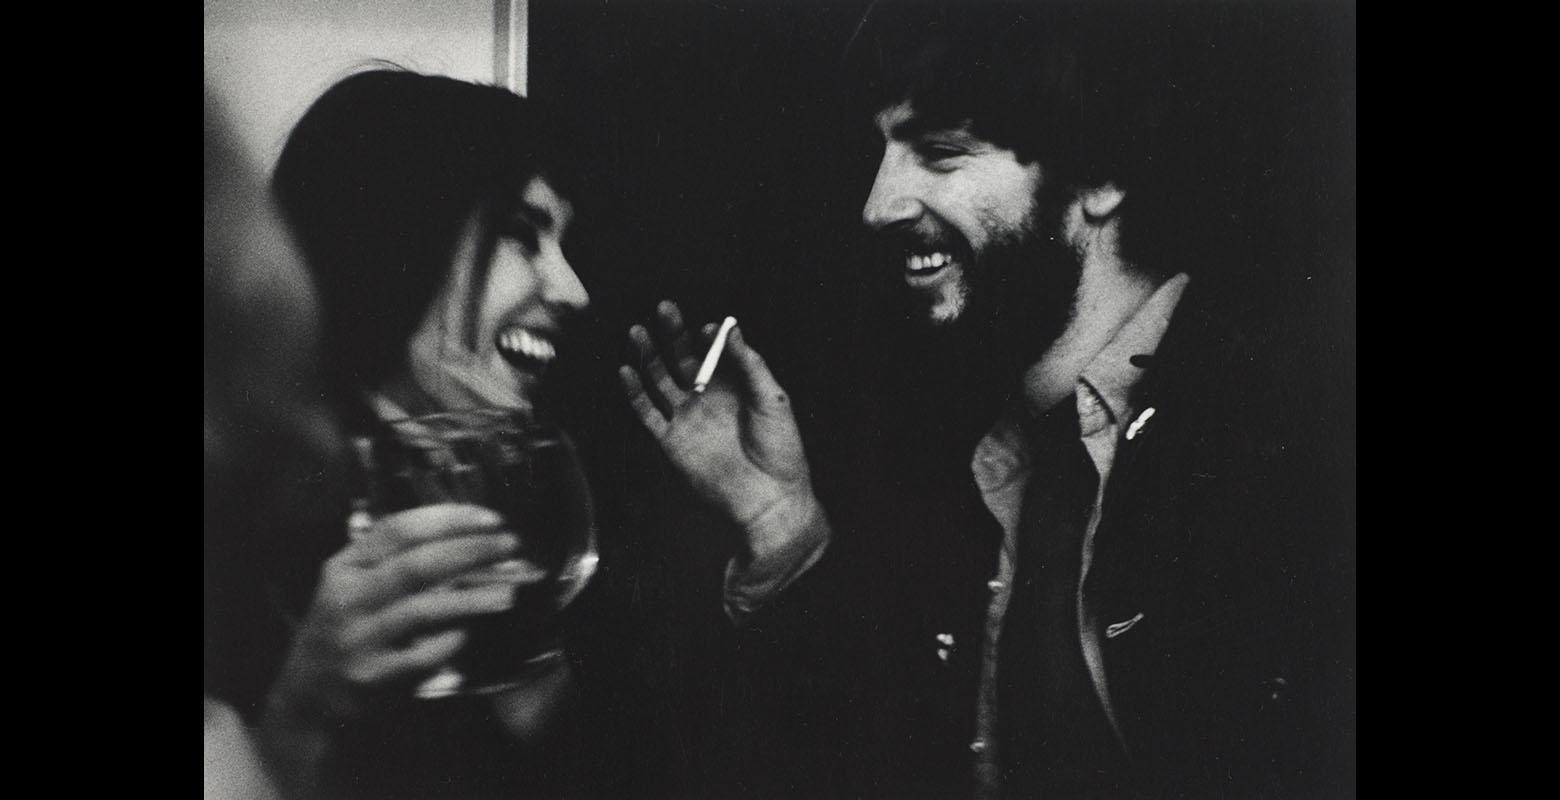 Two people laugh and smile in conversation. One is holding a glass and the other is holding a cigarette